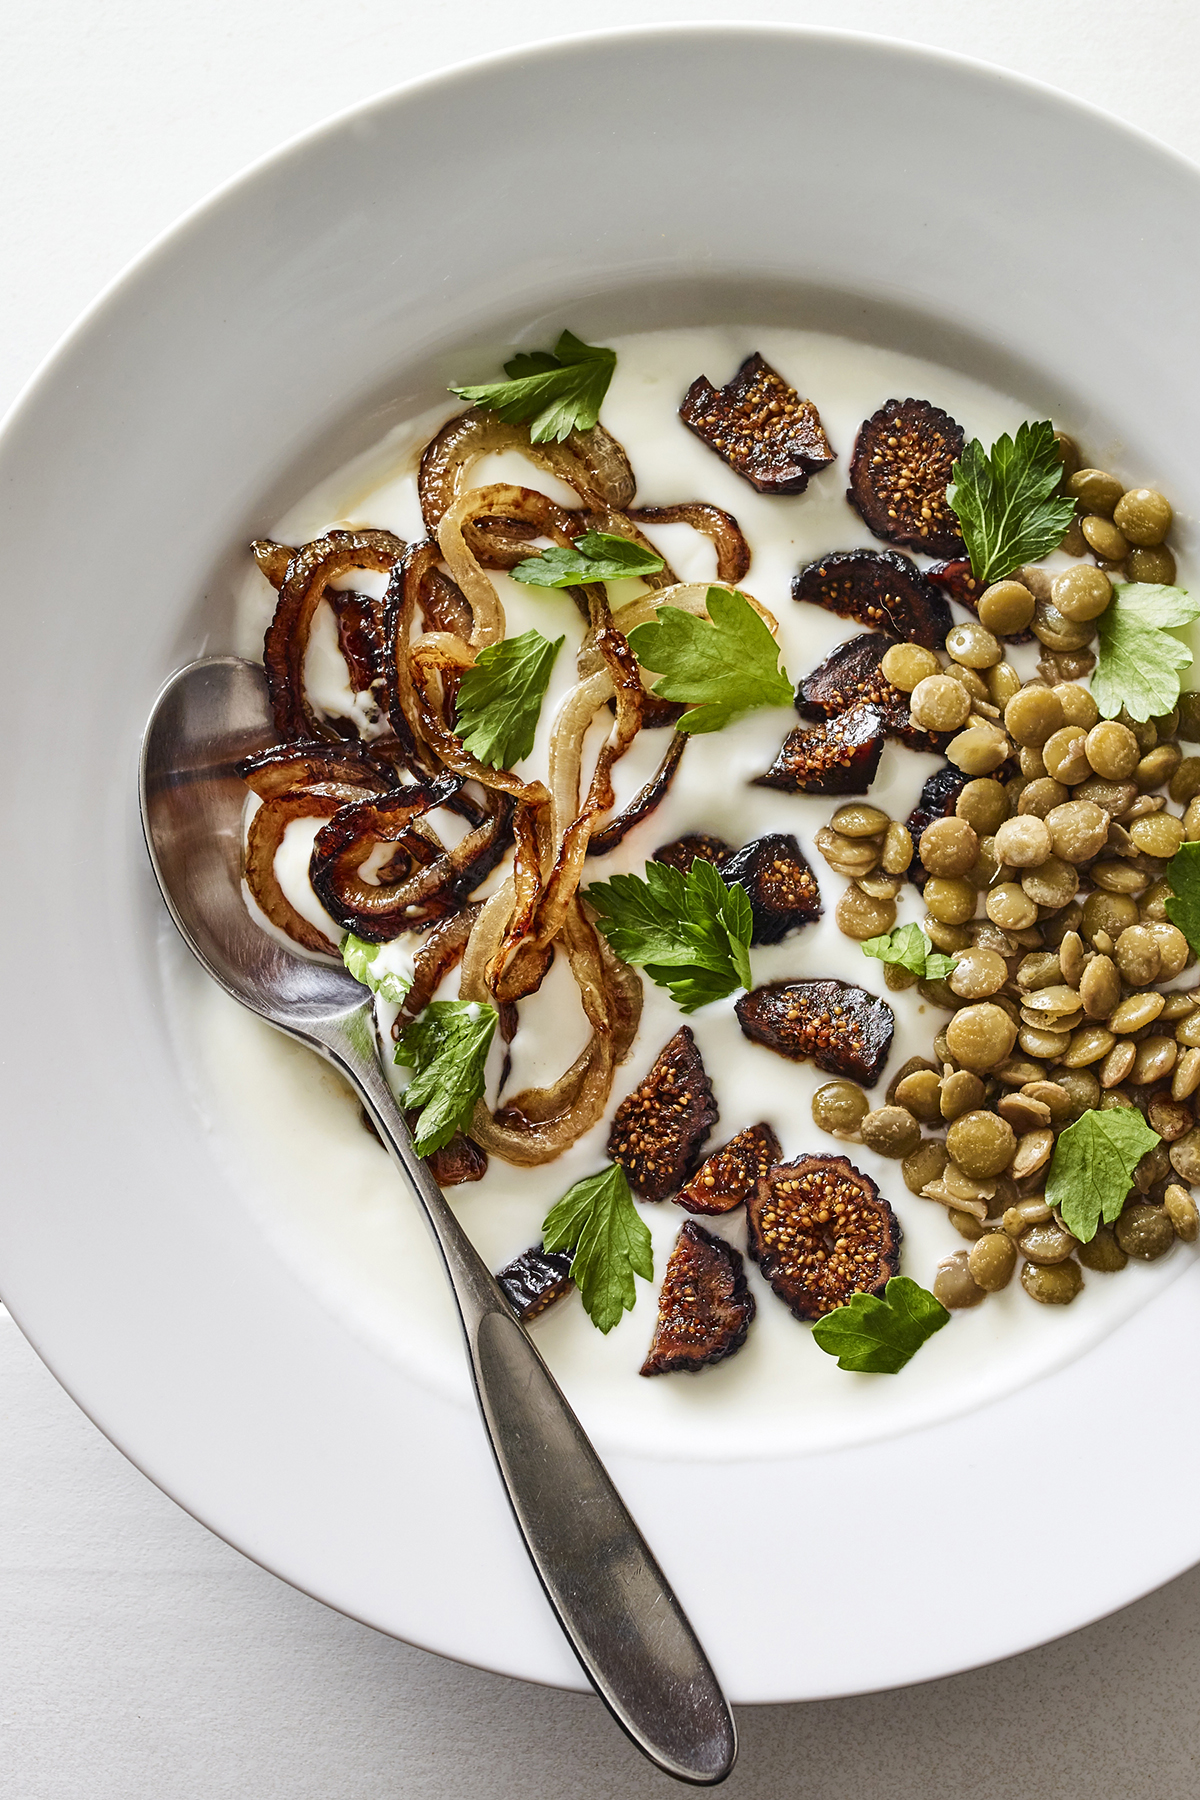 Lentils, Caramelized Onions, and Dried Figs Yogurt Bowl